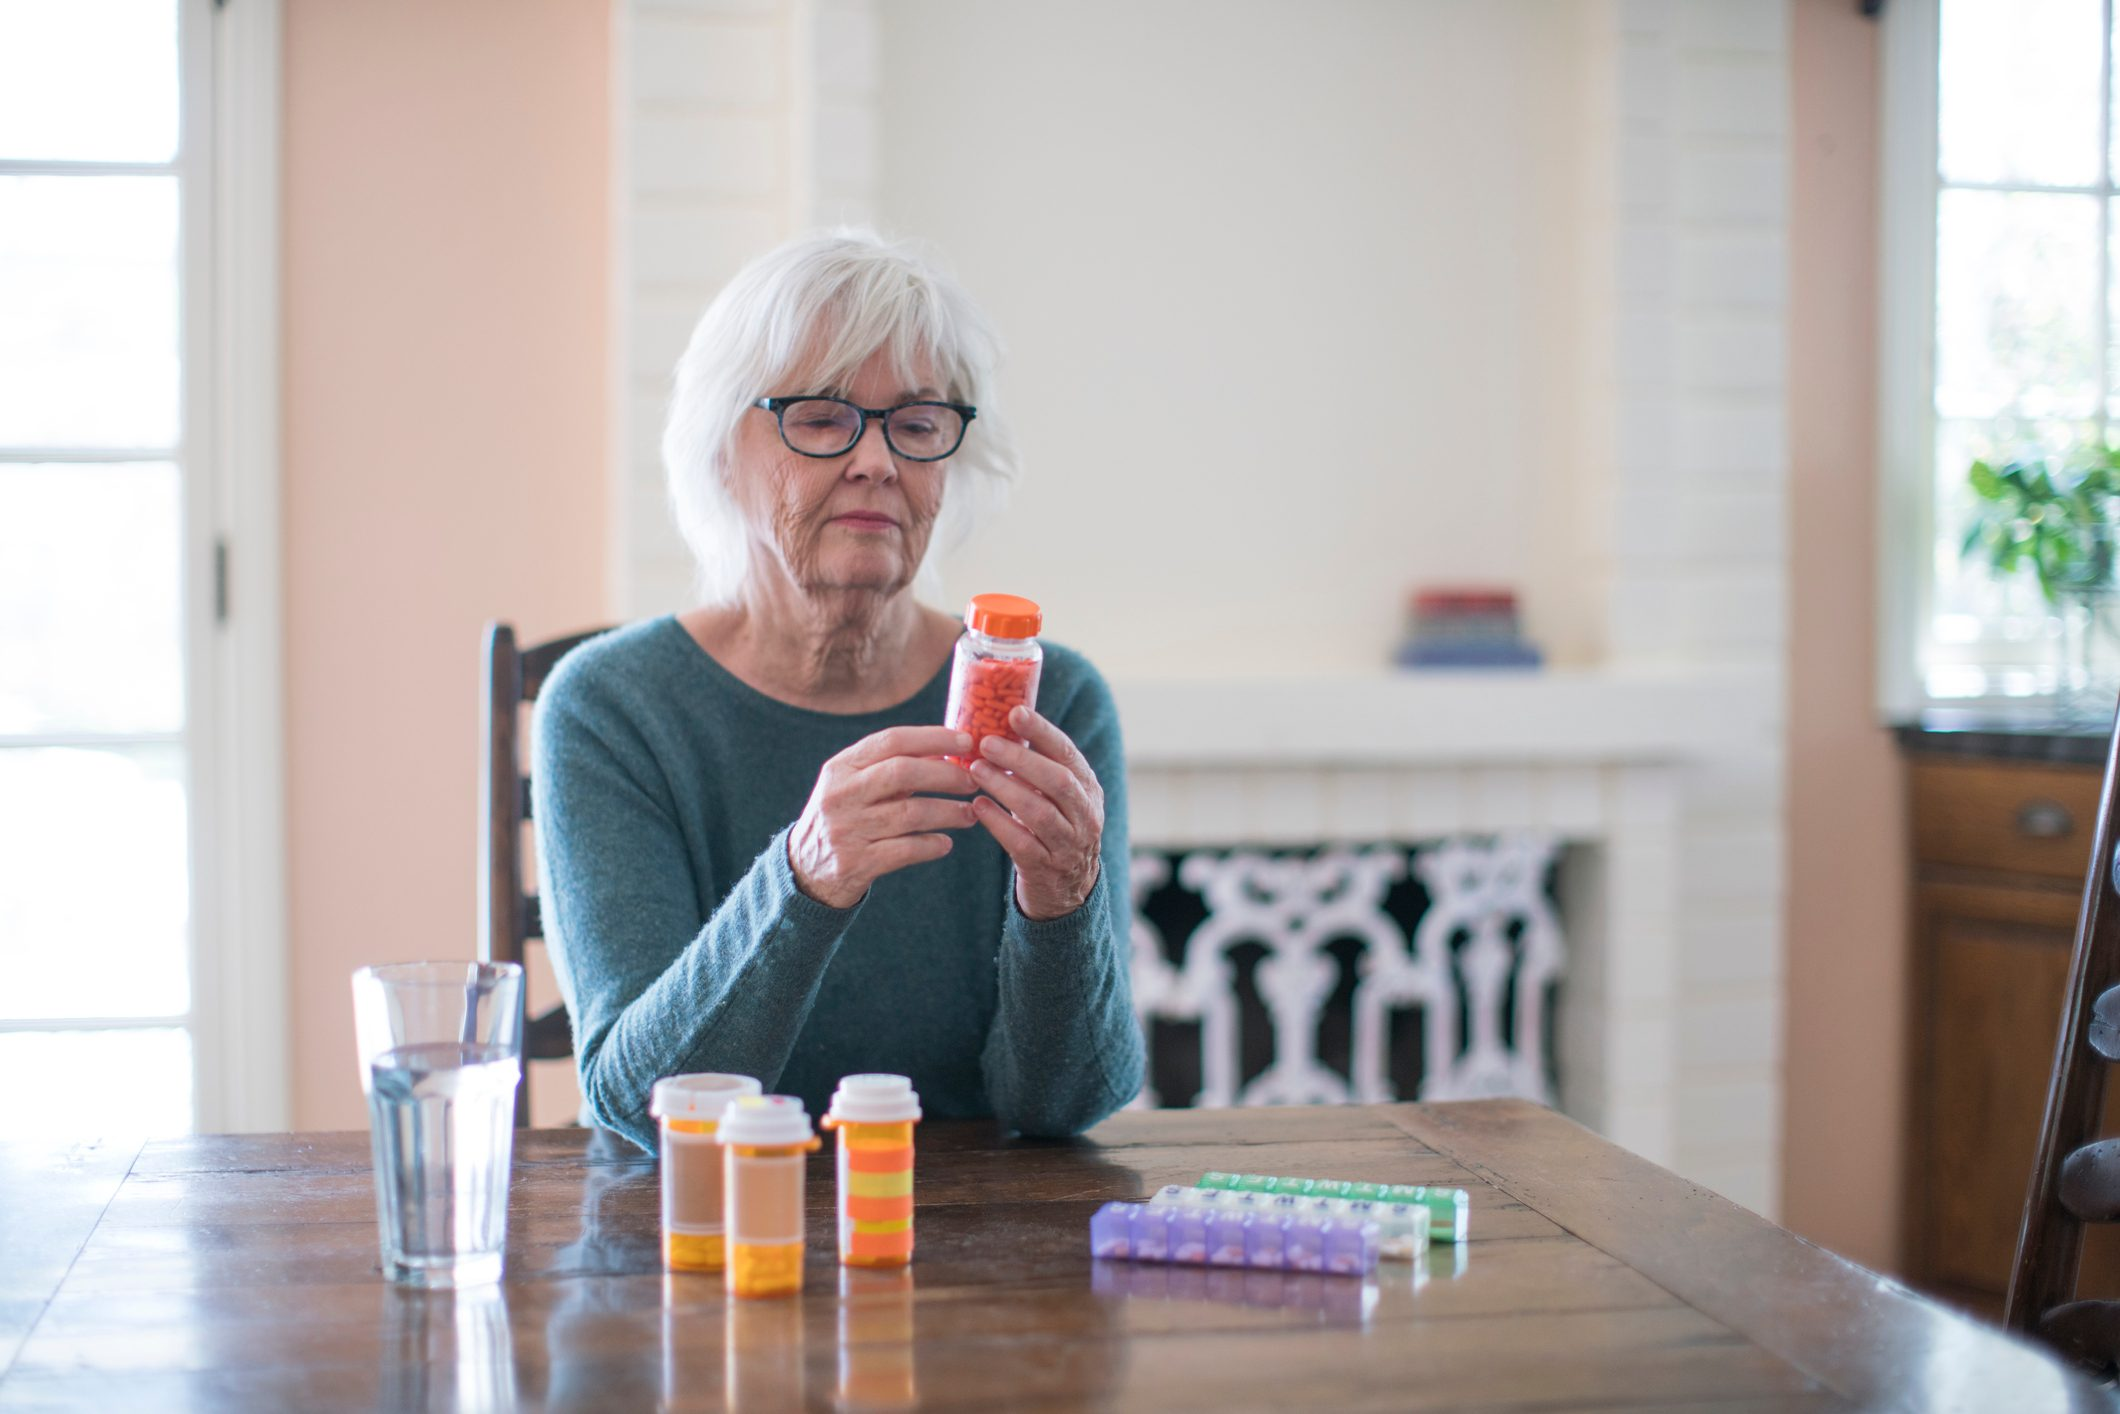 senior woman reading the label of a medication bottle